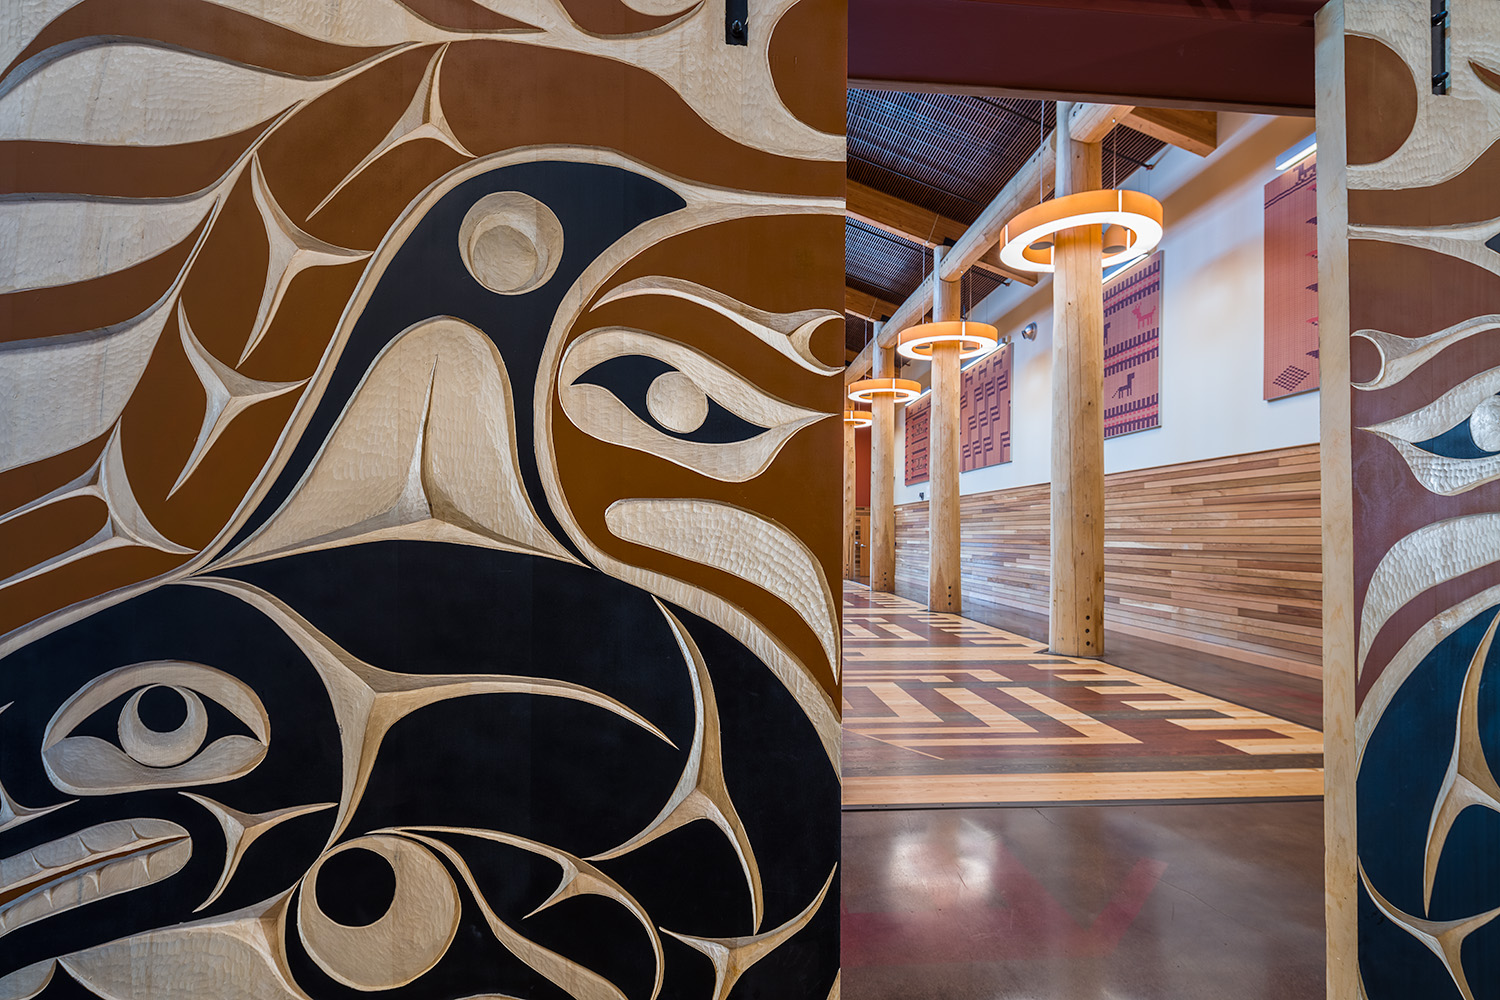 These beautiful carved doors feature traditional Coast Salish artwork. A view through to the Gathering Space provides a sense of depth and scale.